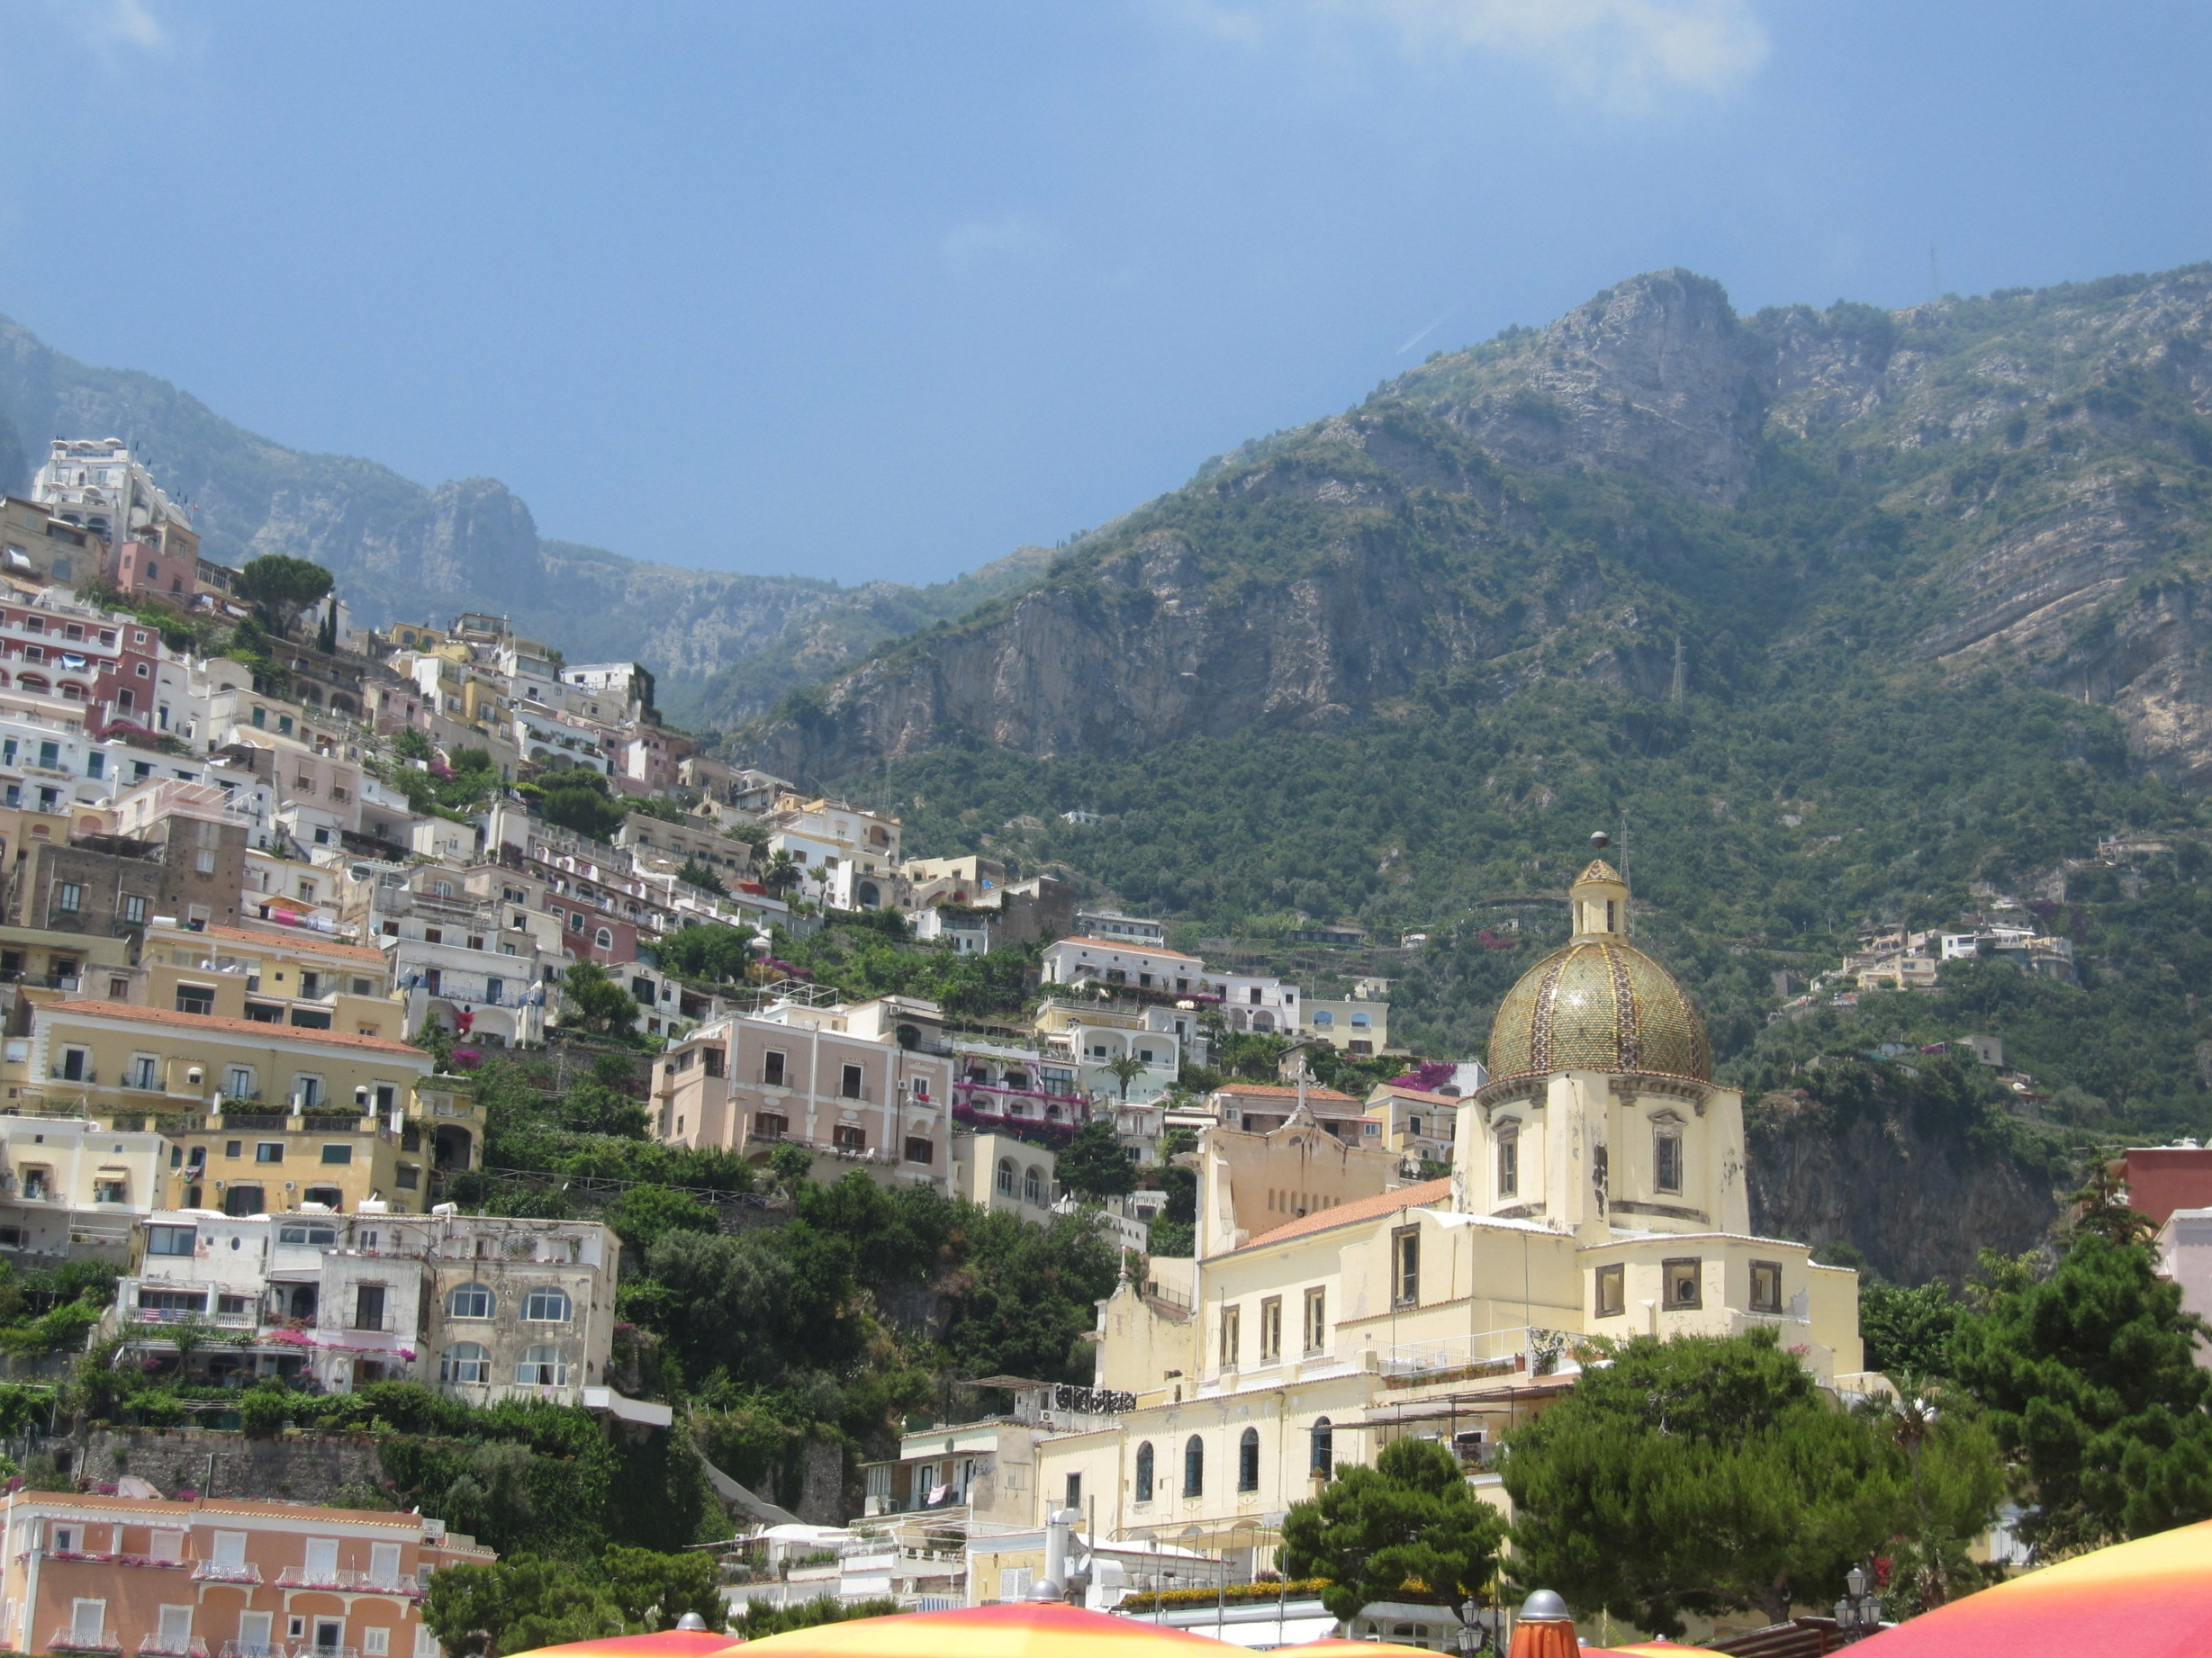 Positano from the beach: the dome of Santa Maria Assunta church.